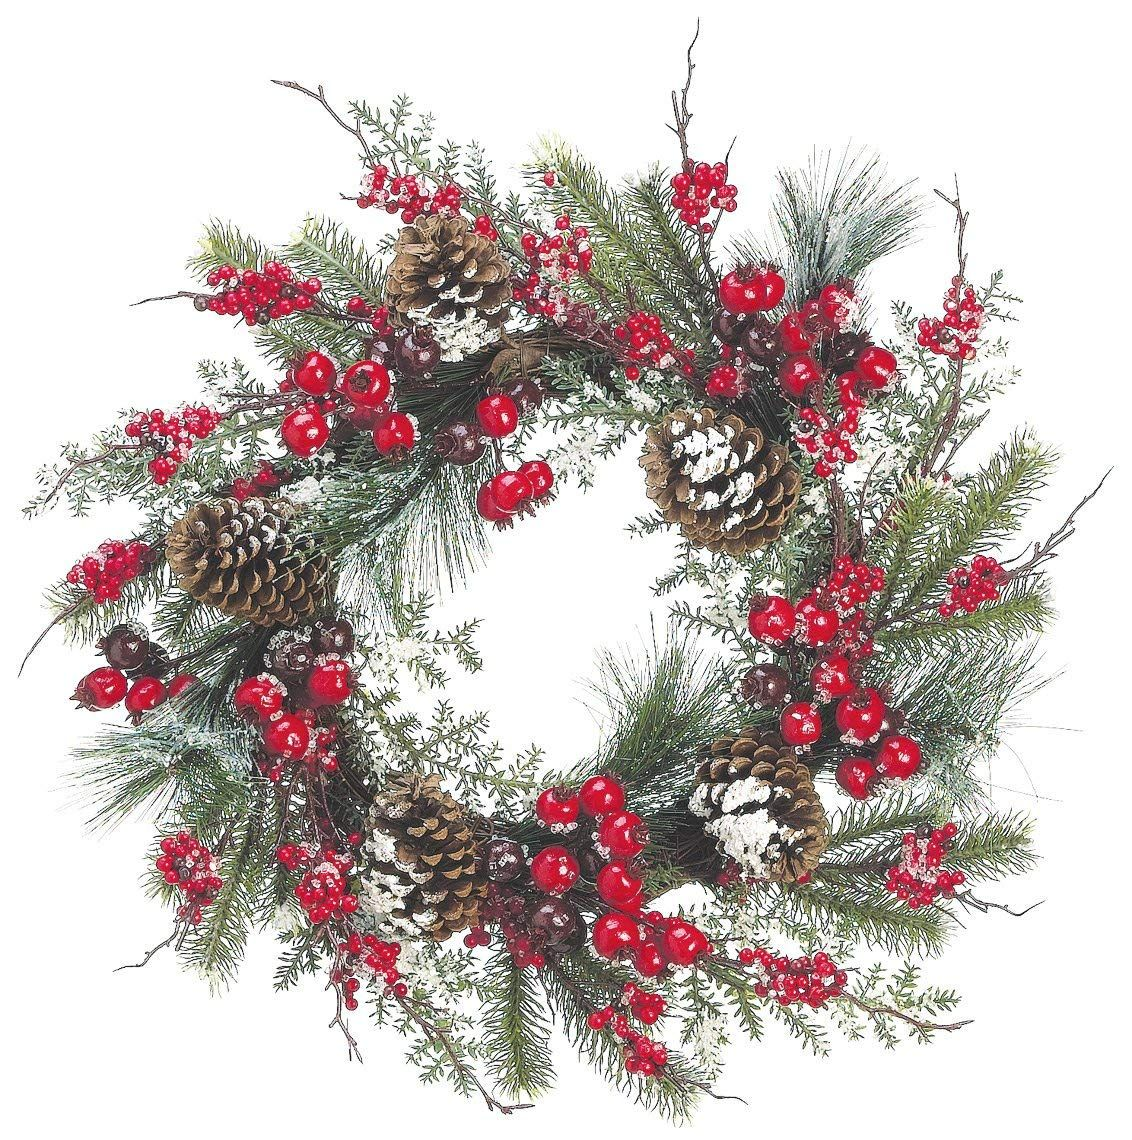 Amazon Com 24 Inch Iced Mixed Pine Christmas Wreath With Cranberry Red Berry And Pine Cone Artificial Christmas Wreath Home Kitchen Noel Fete Couronnes